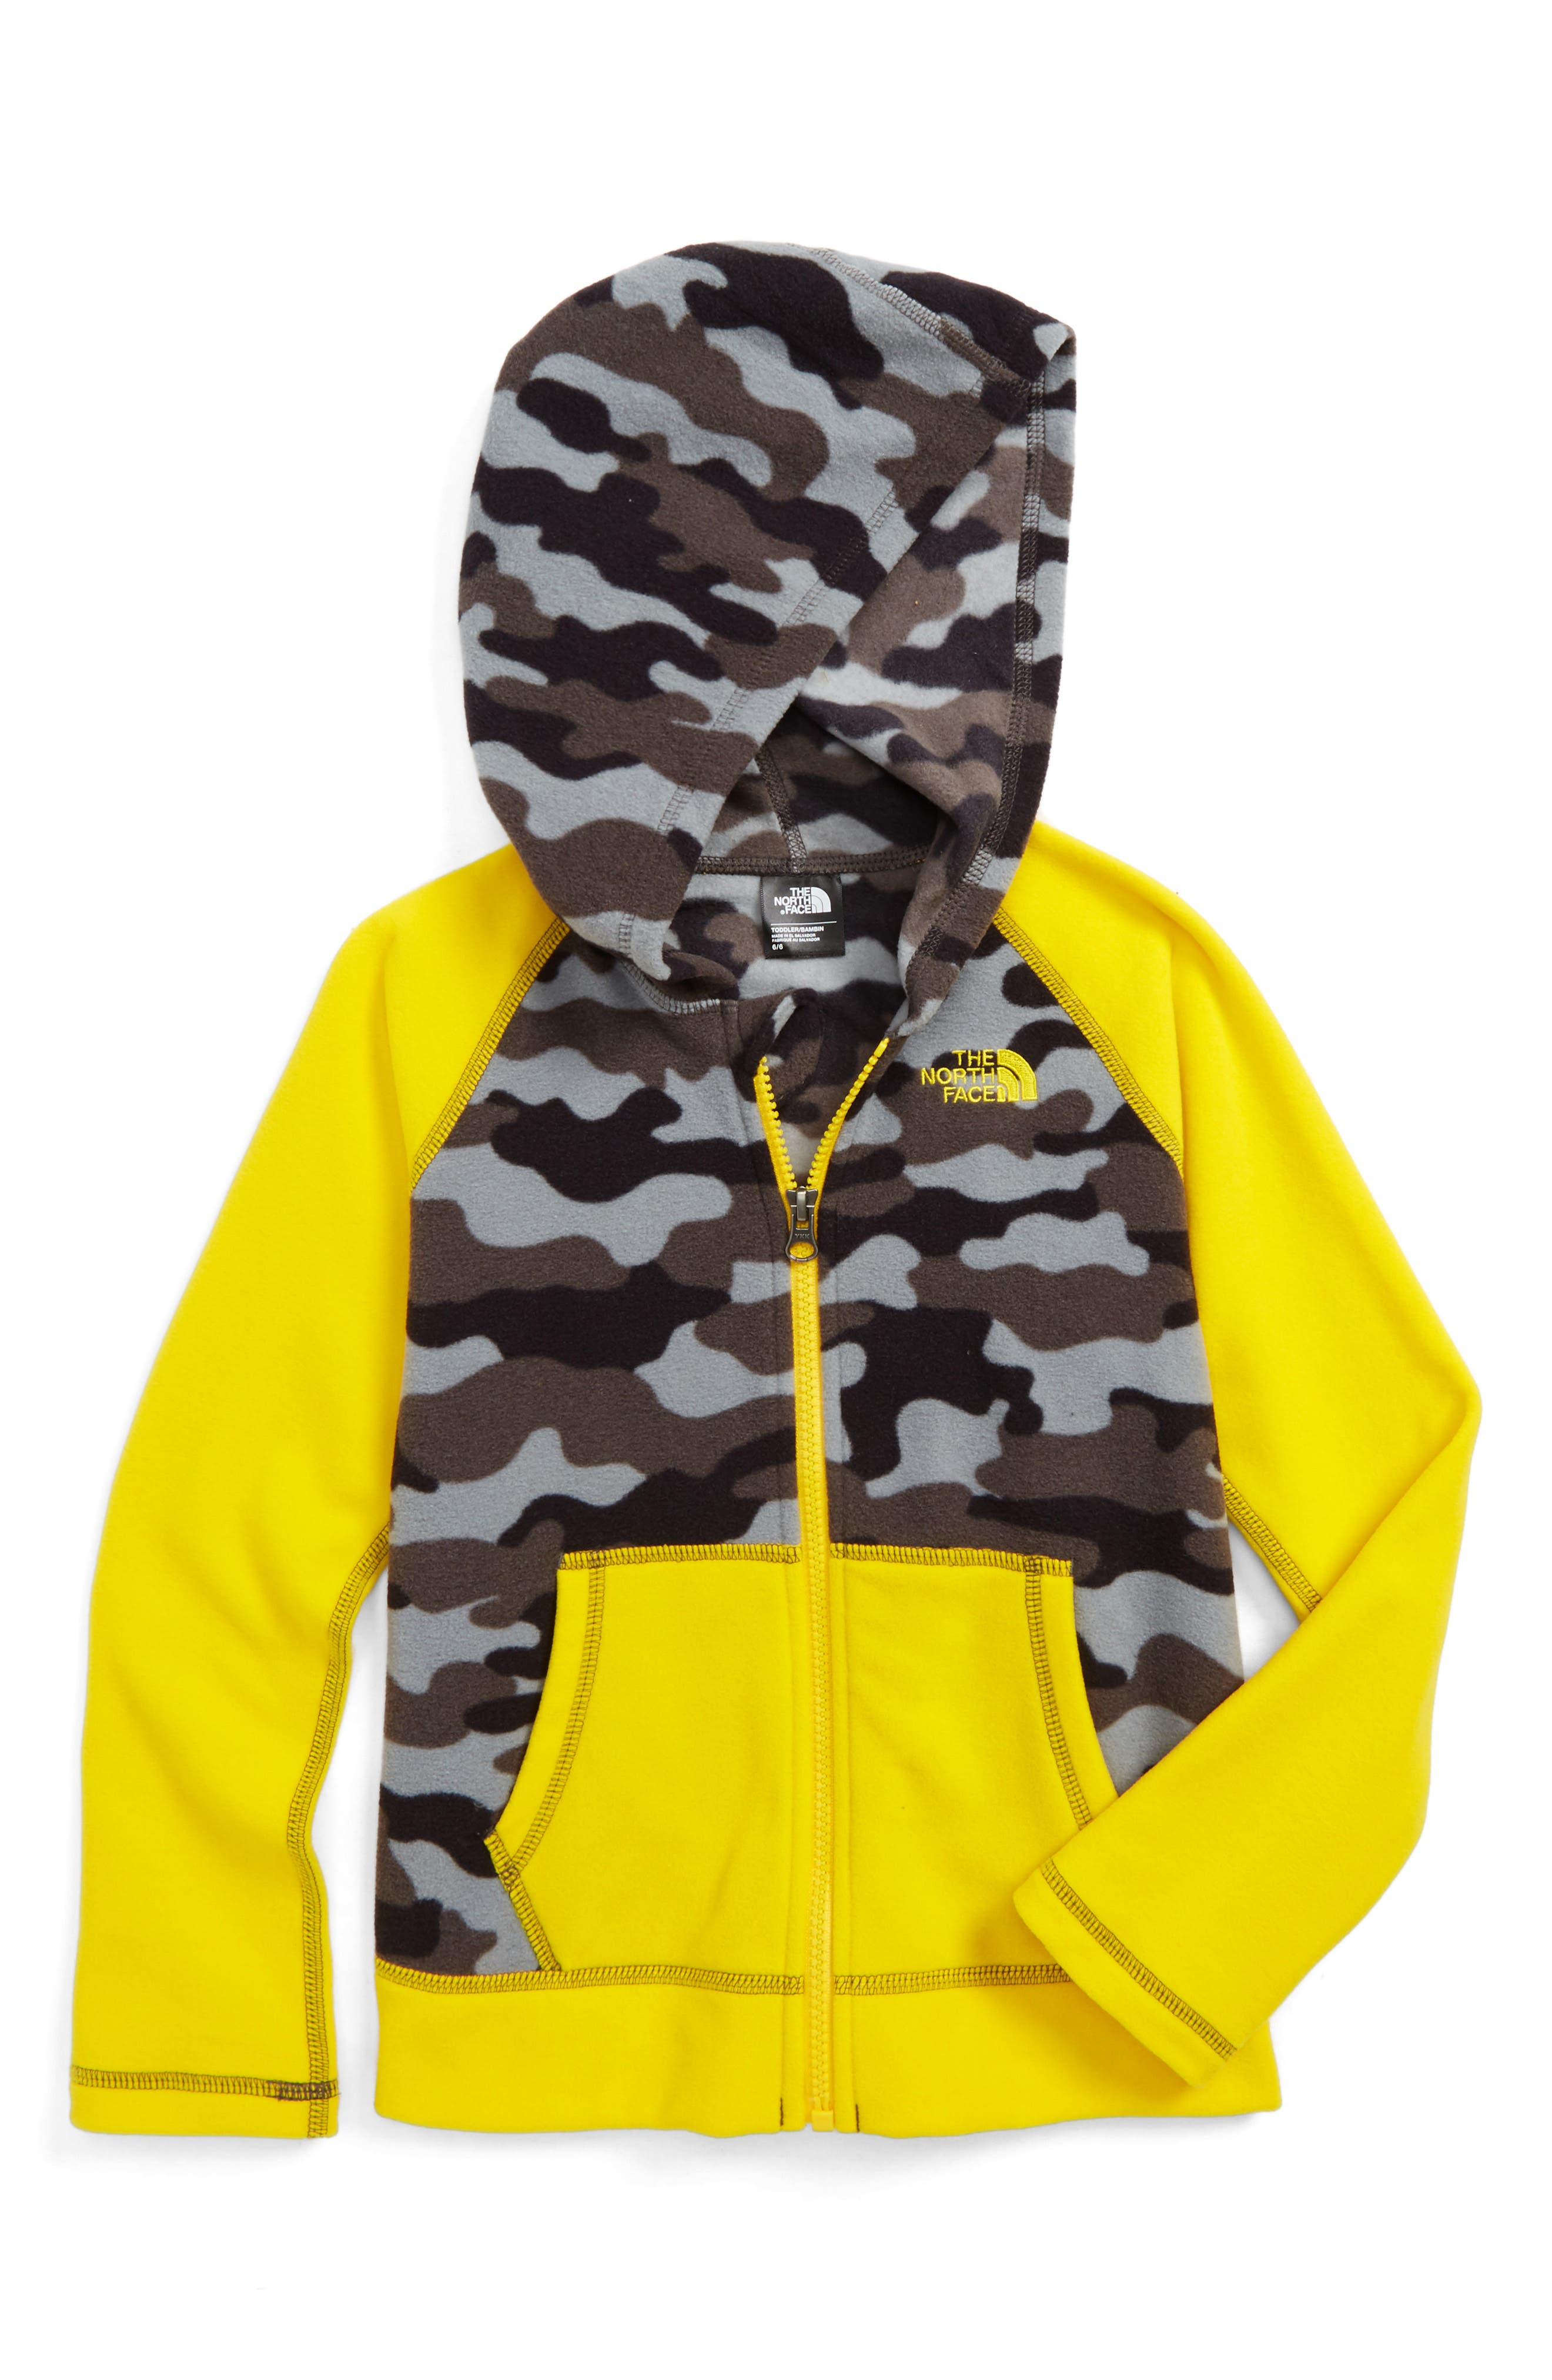 Alternate Image 1 Selected - The North Face Glacier Zip Hoodie (Toddler Boys & Little Boys)